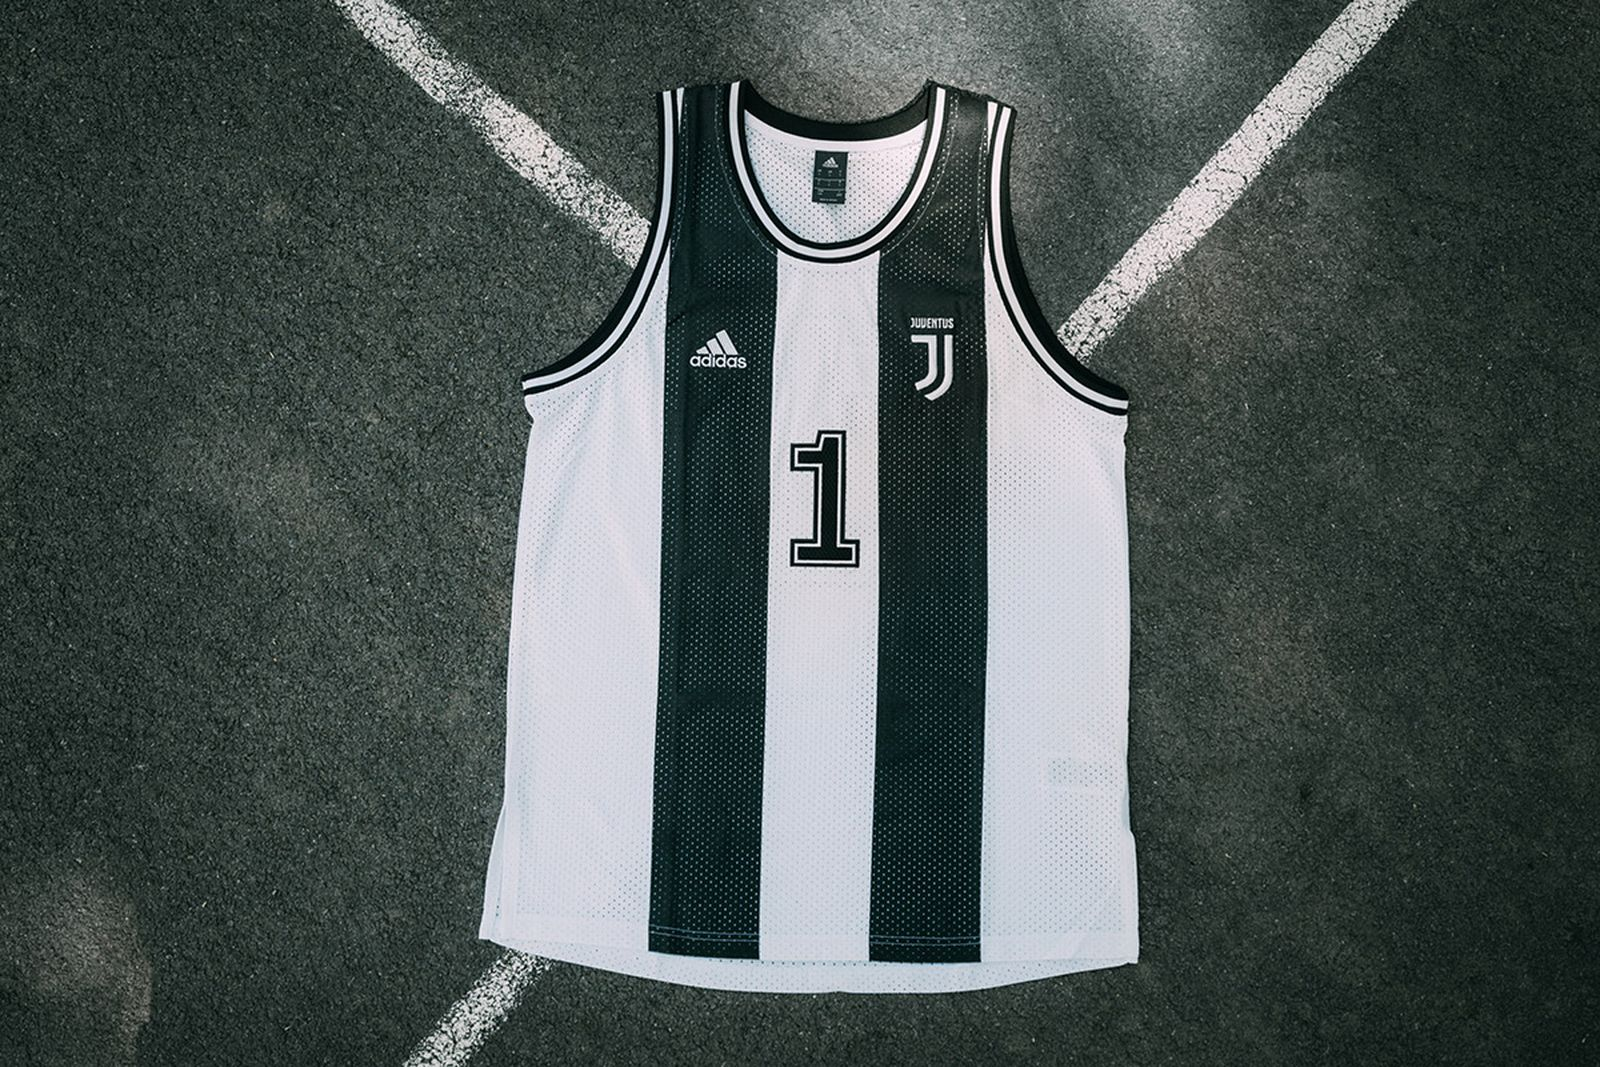 Juventus Just Dropped An Adidas Basketball Jersey